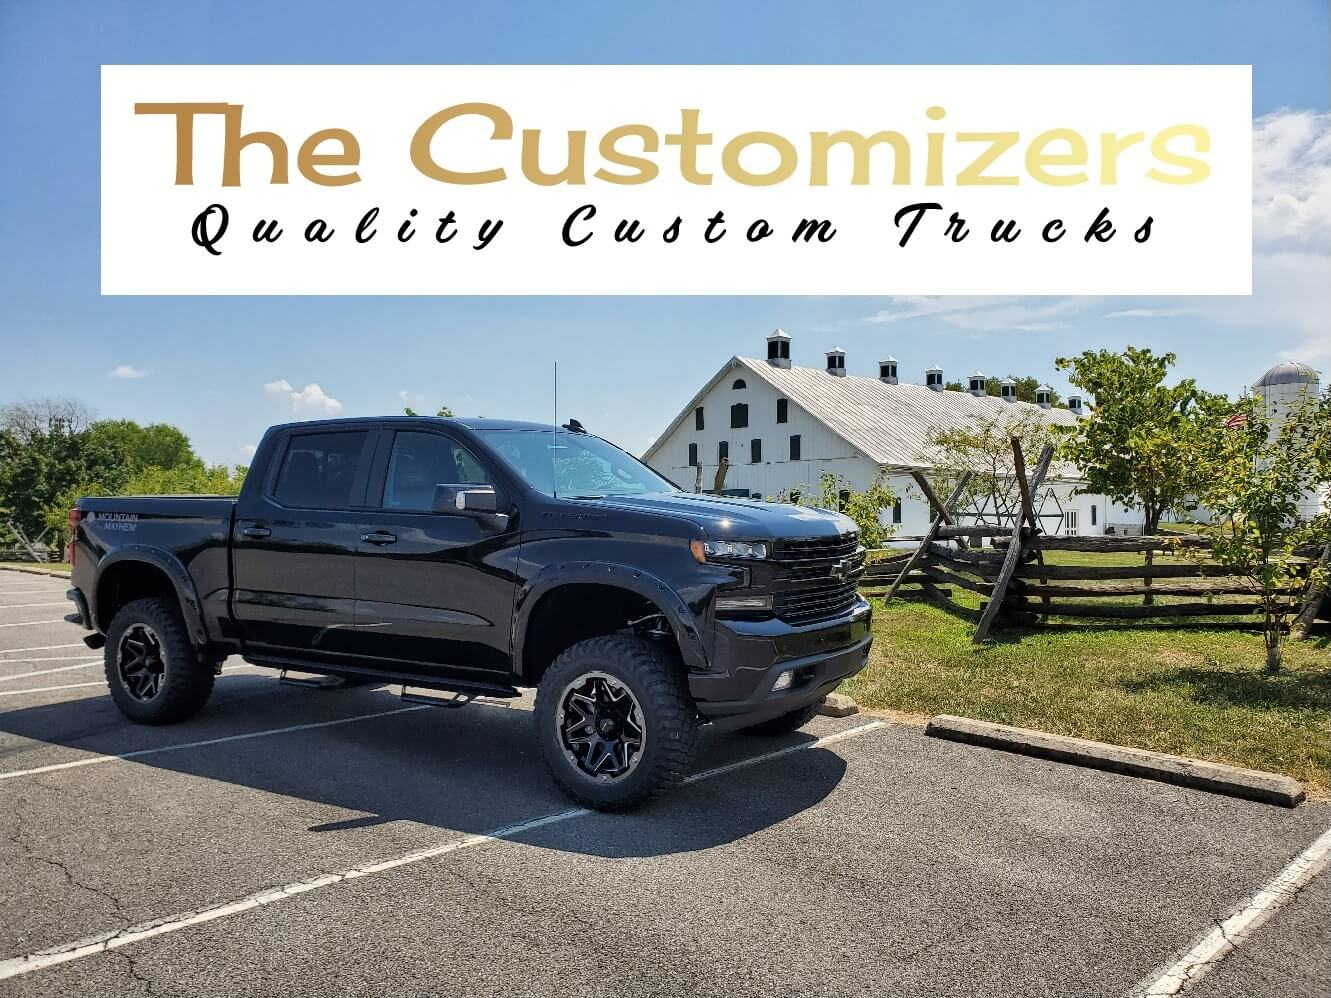 The Customizers Quality Custom Trucks